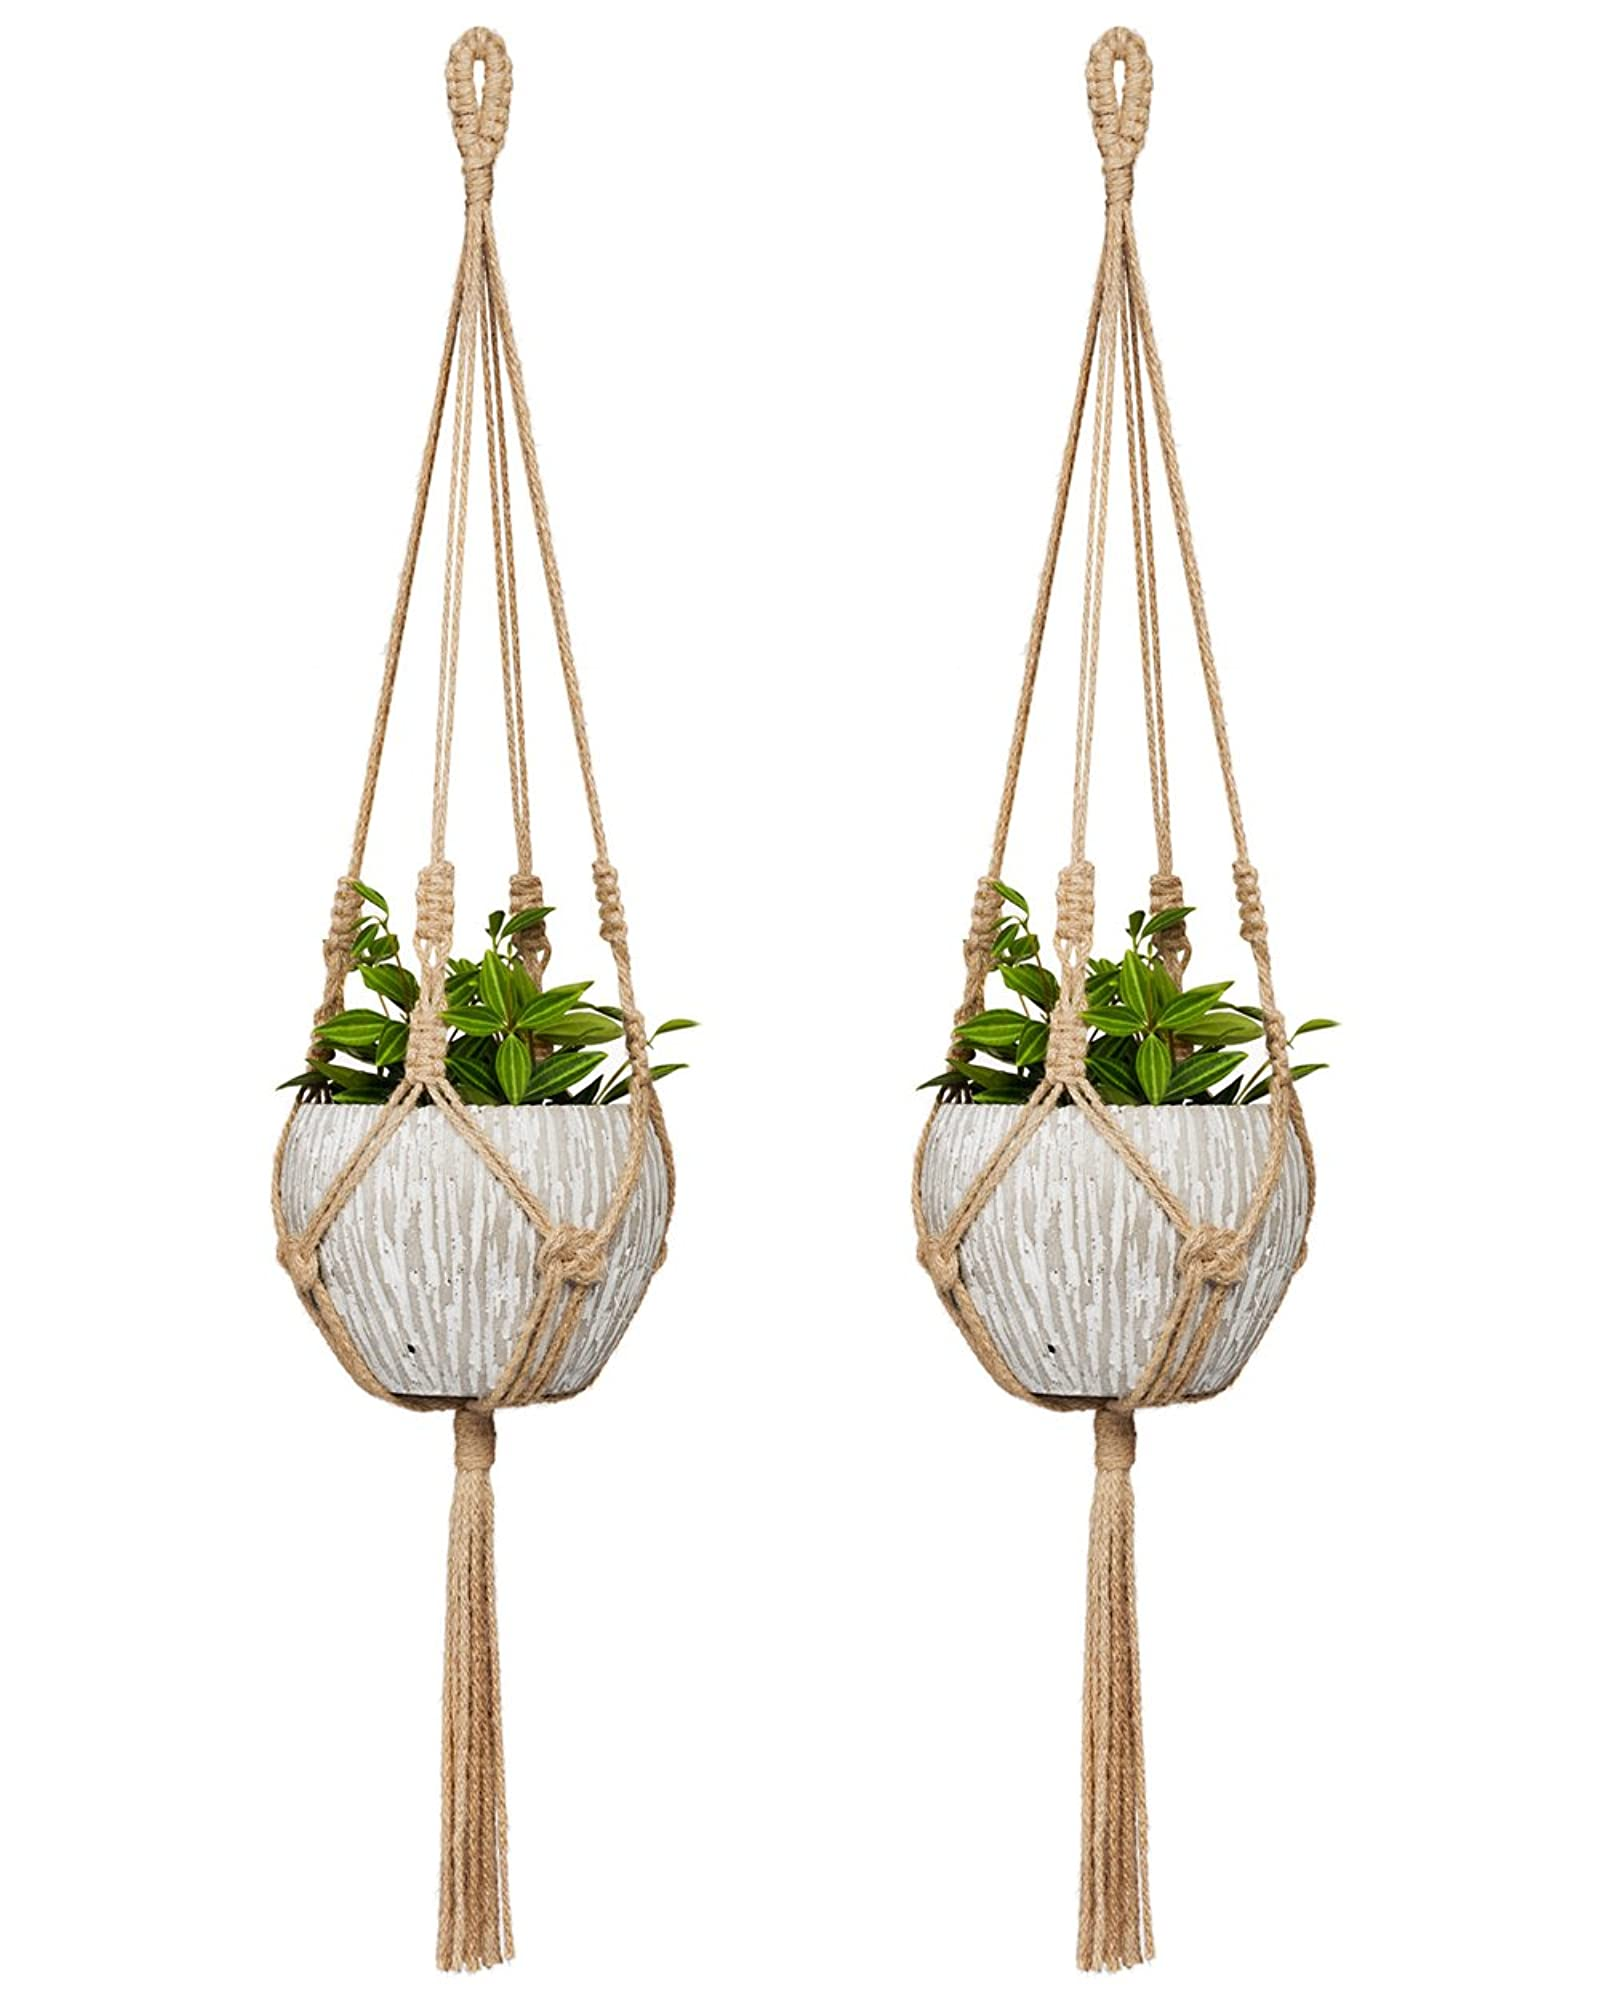 Jute Hanging Pot Holder 30 Inch (Set Of 2) (Pot Not Included)